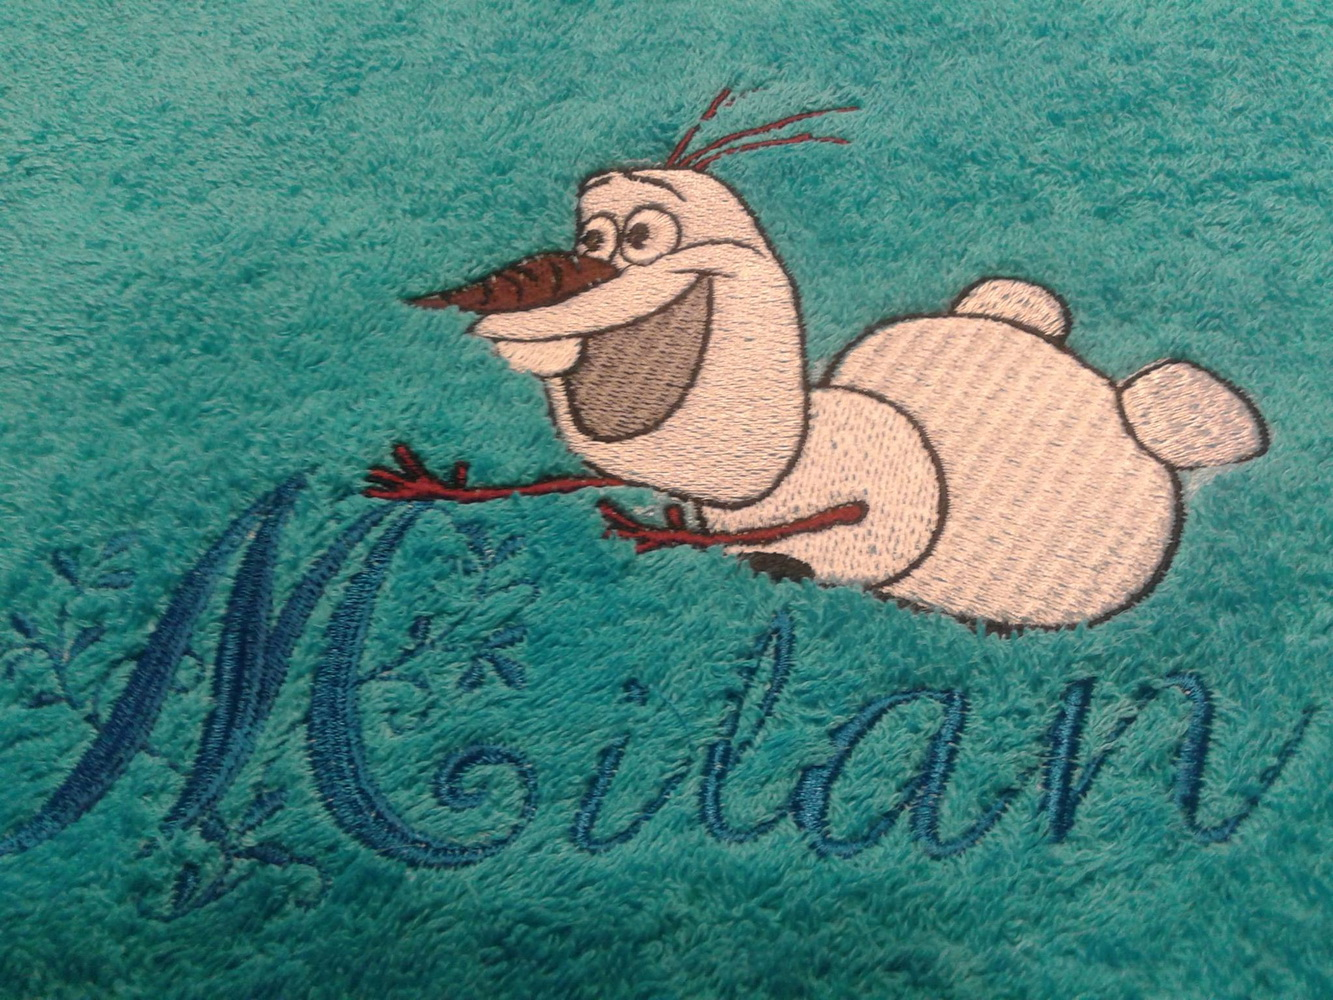 Bath towel with embroidered Olaf on it